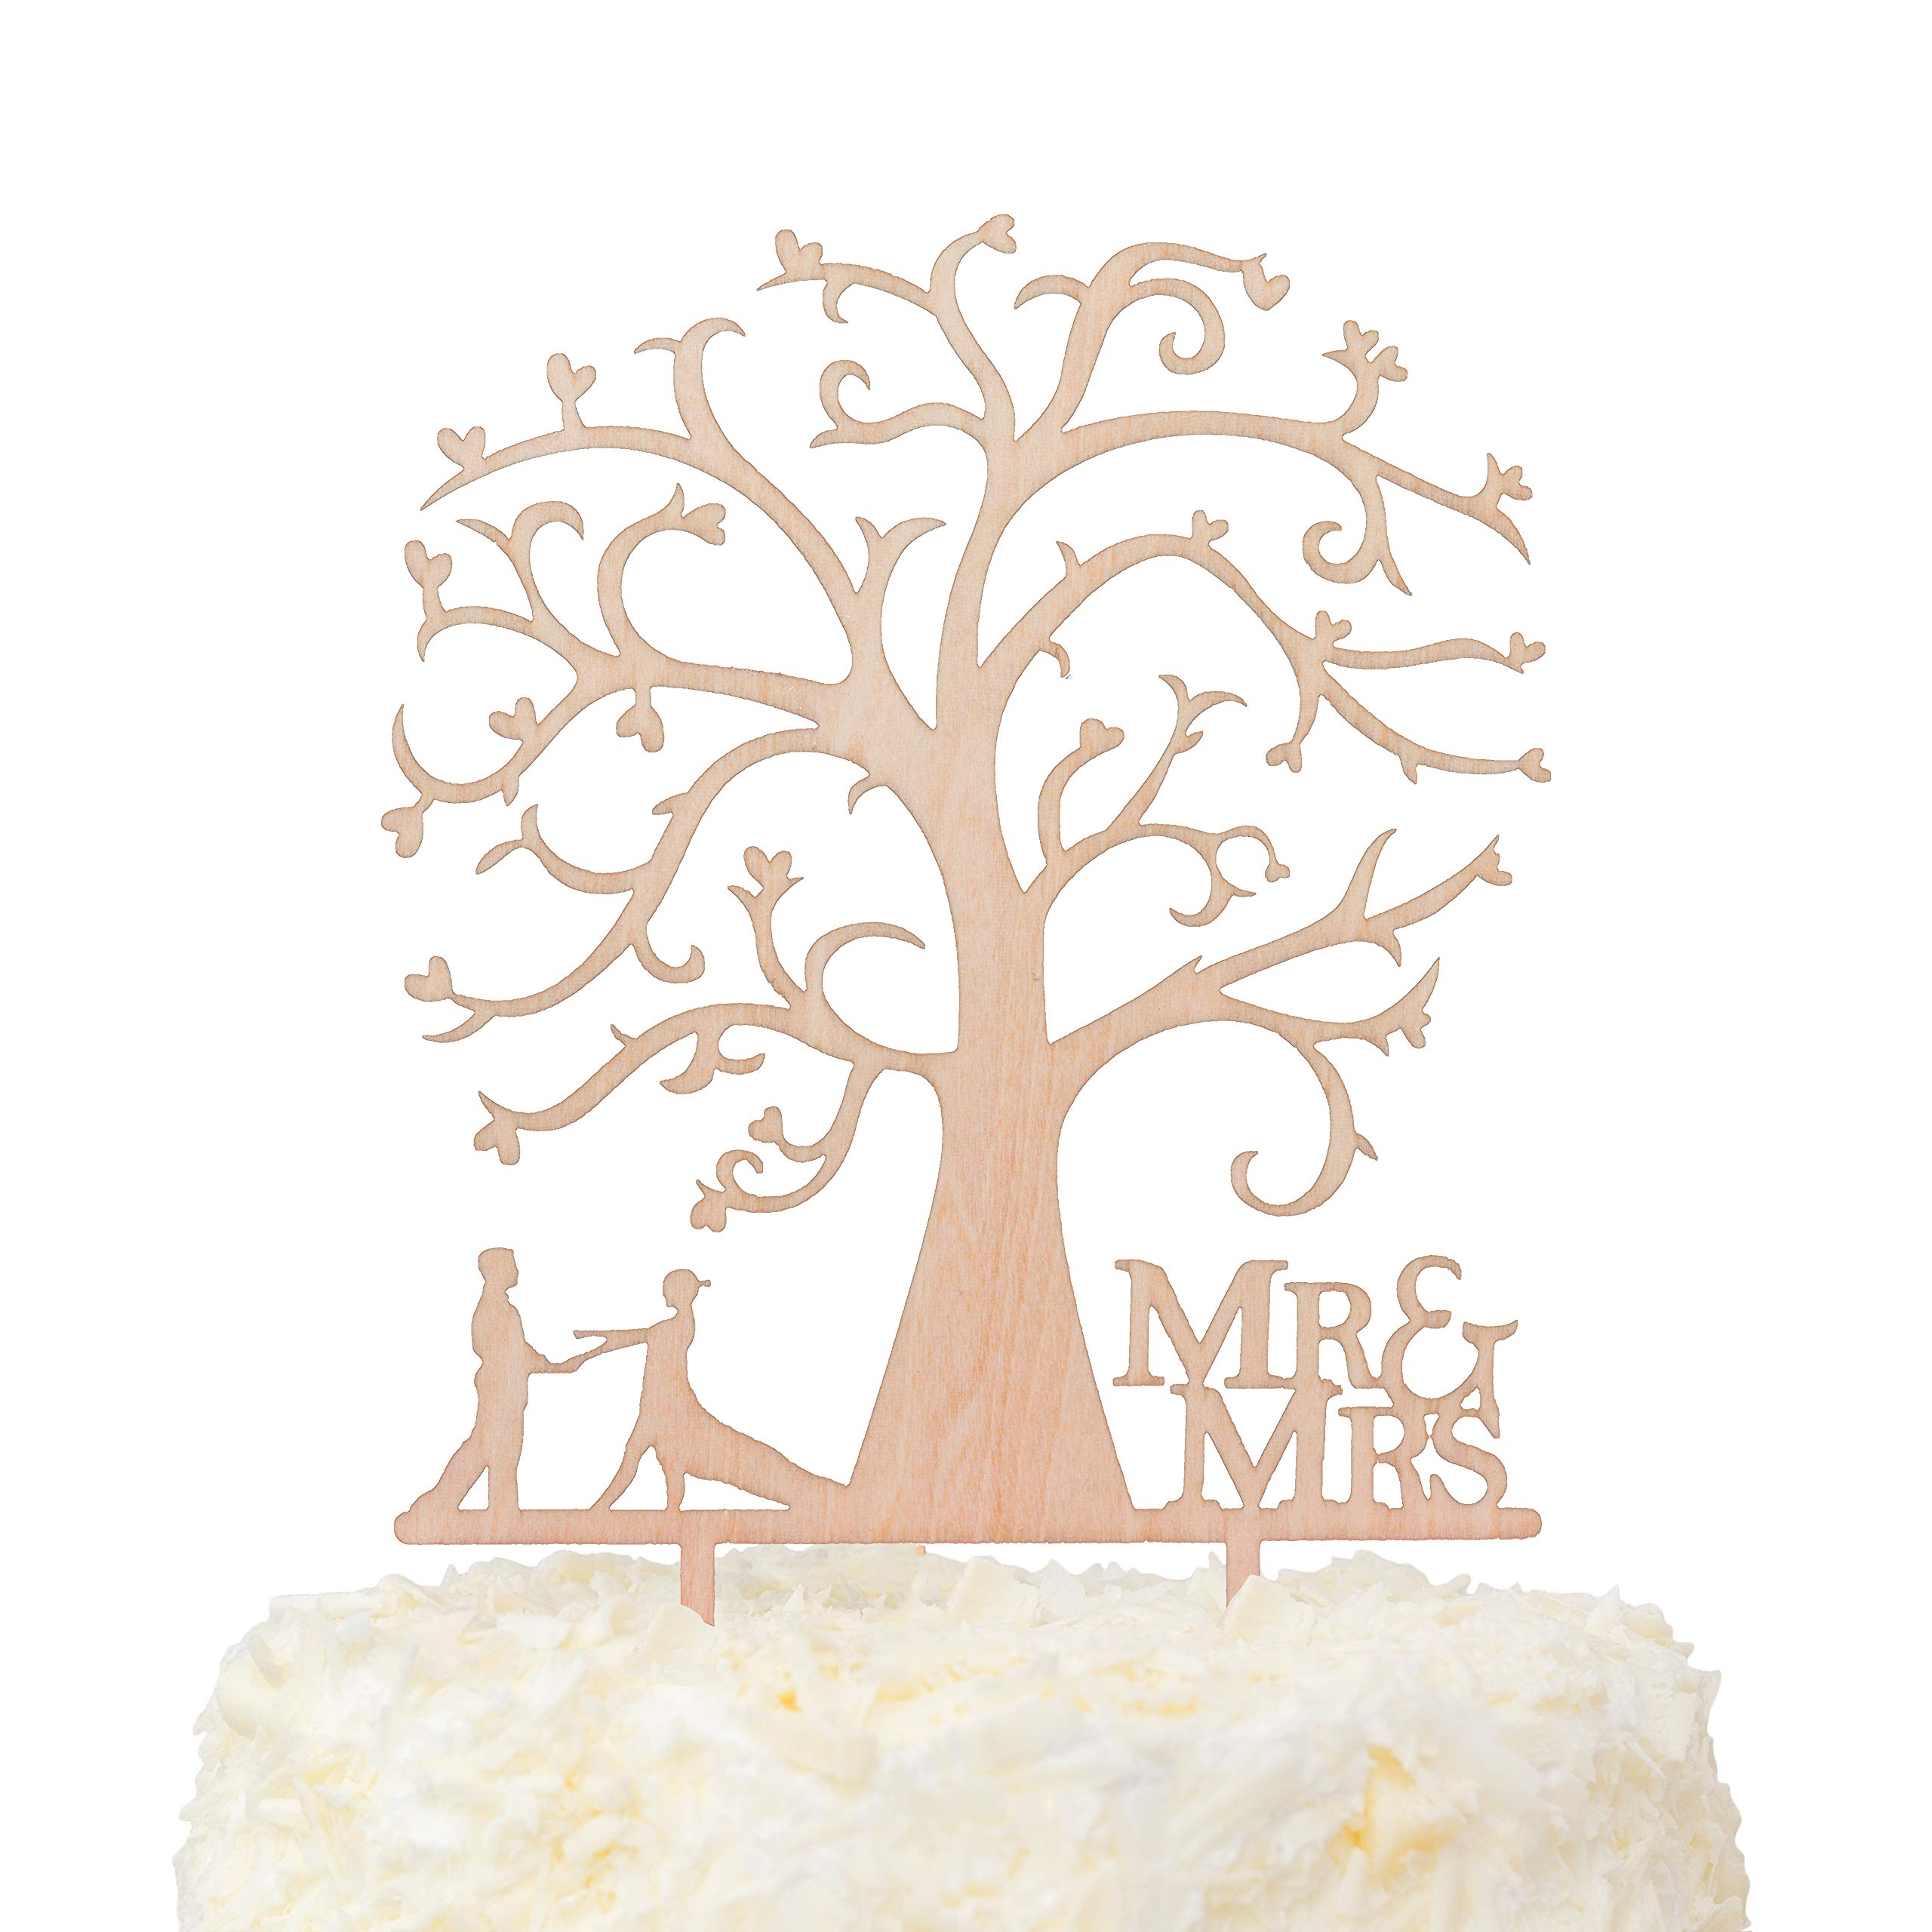 LOVENJOY Gift Box Pack Mr and Mrs Dancing Bride and Groom Tree Silhouette Rustic Wedding Cake Toppers Wood (5-inch) by LOVENJOY (Image #1)